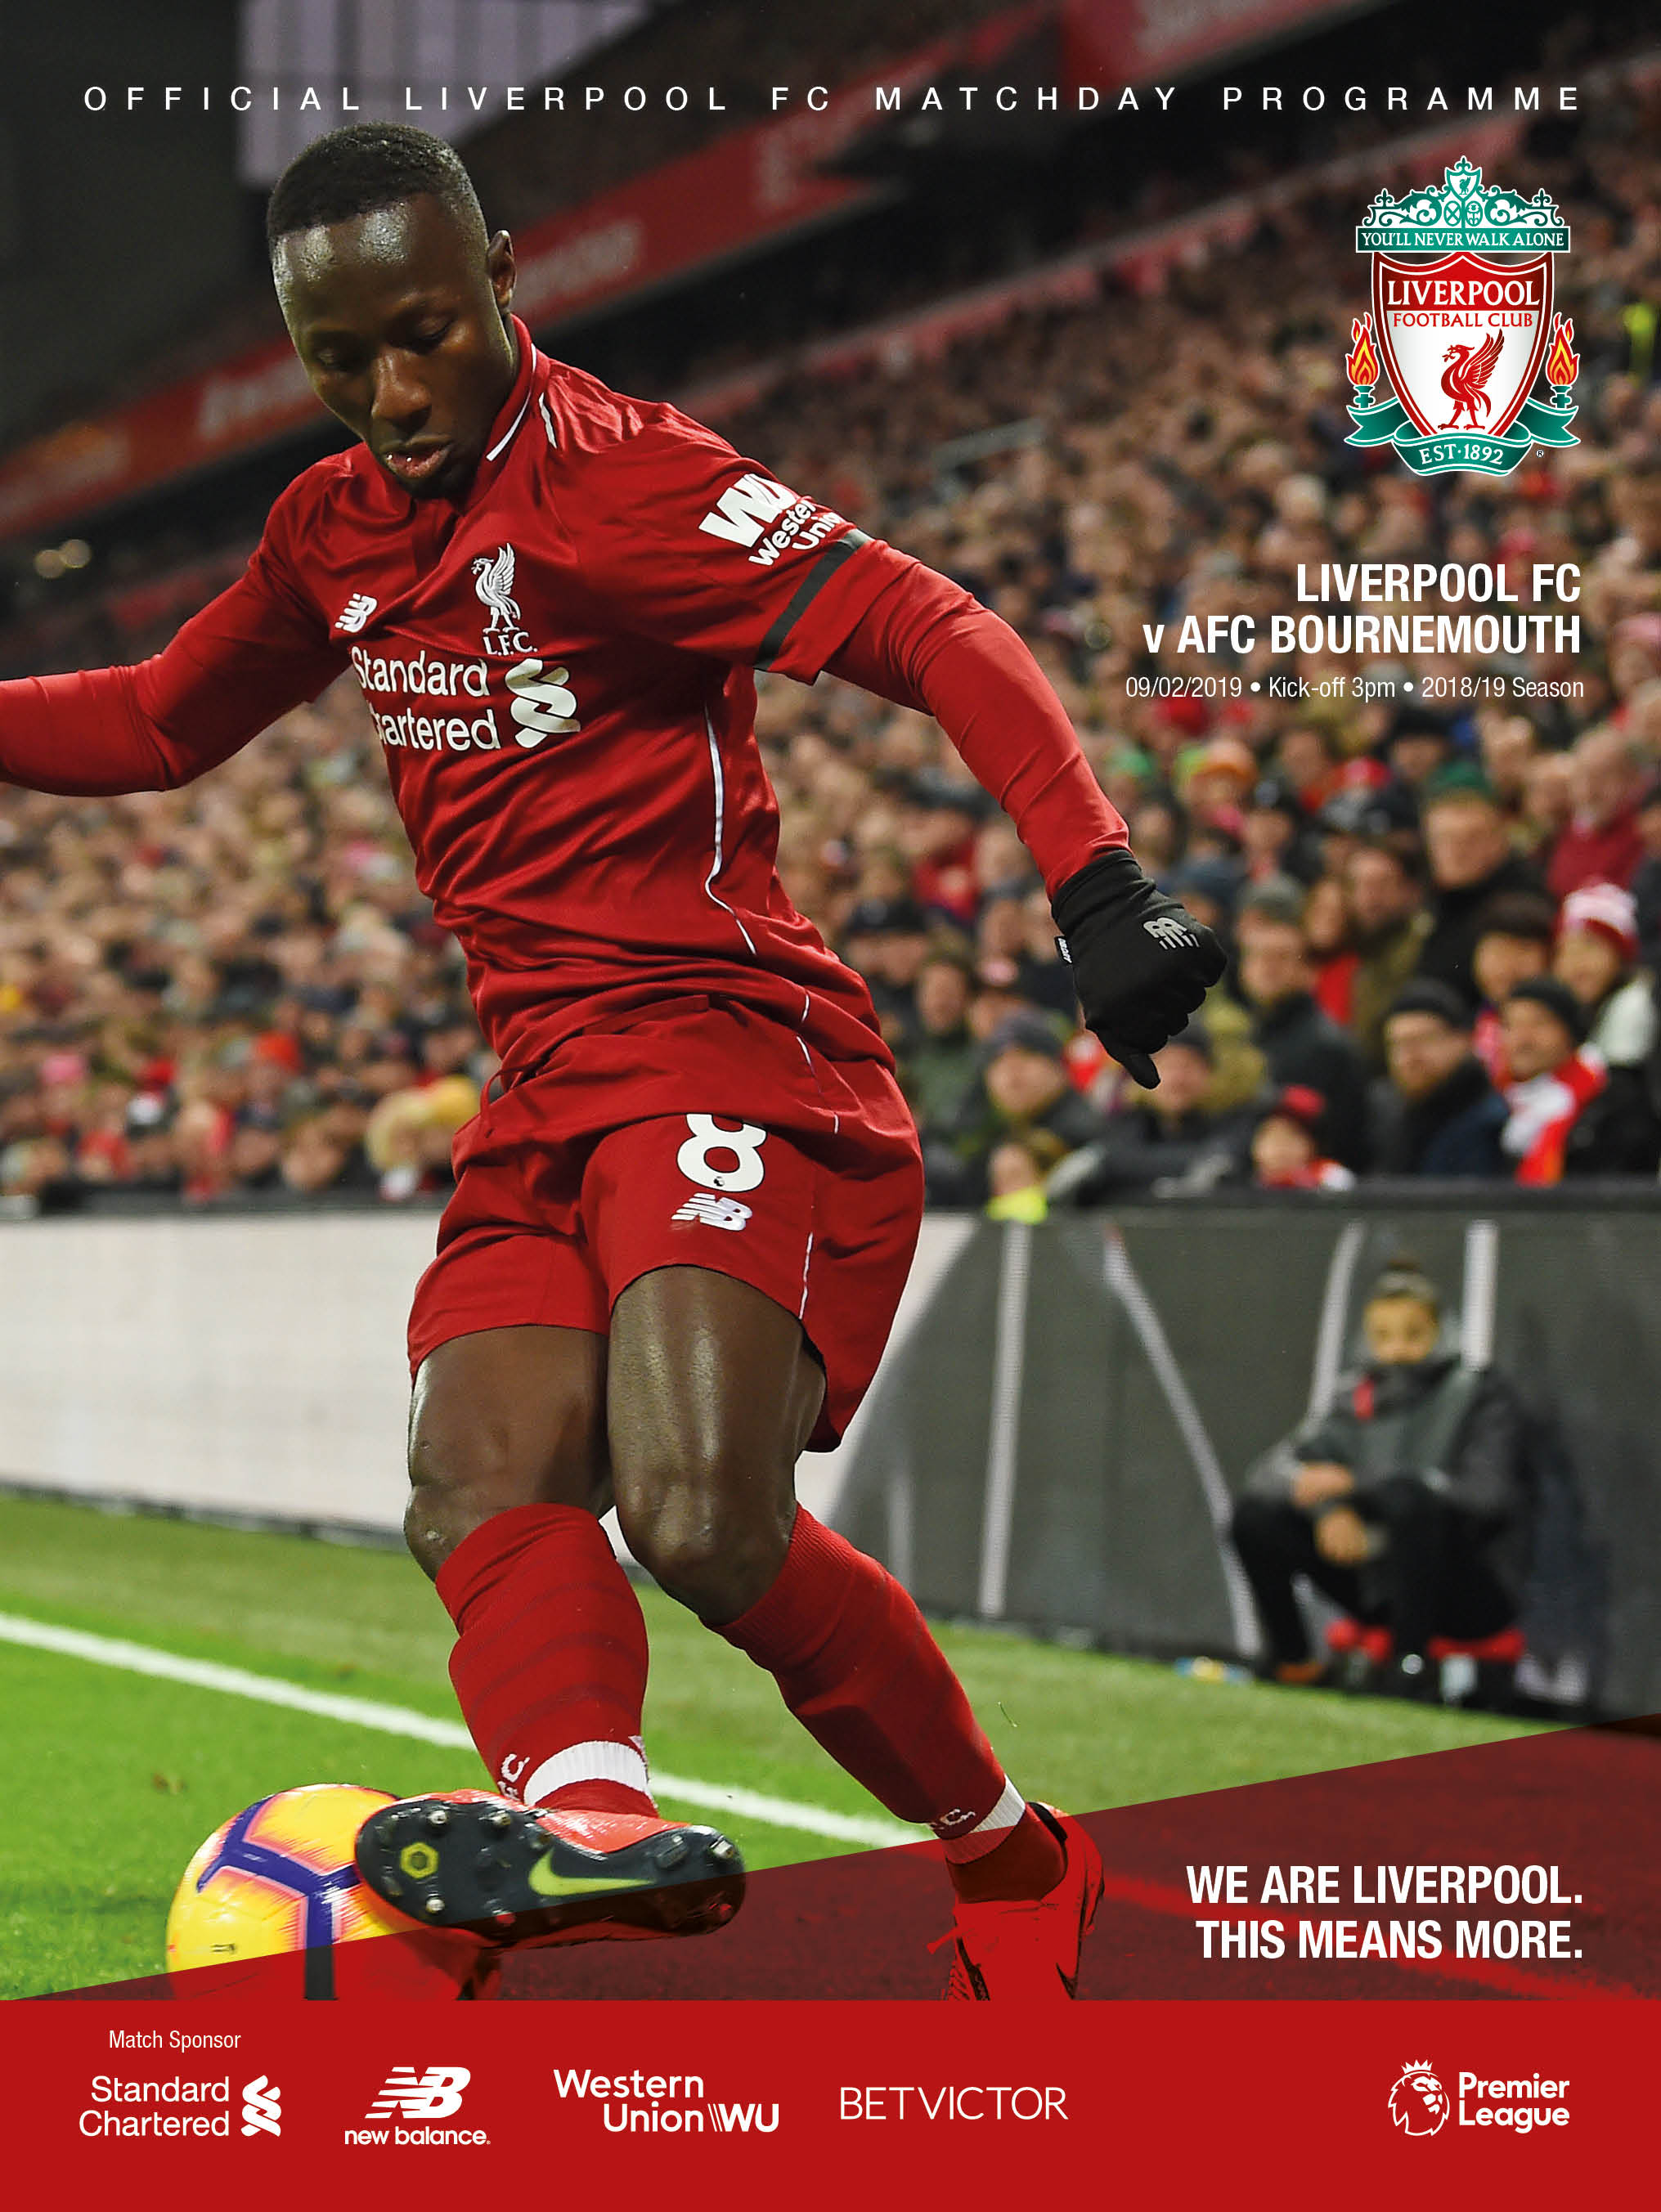 6362a0580 Our No.8 adorns the matchday programme this afternoon - grab your copy at  Anfield or subscribe online by clicking here.